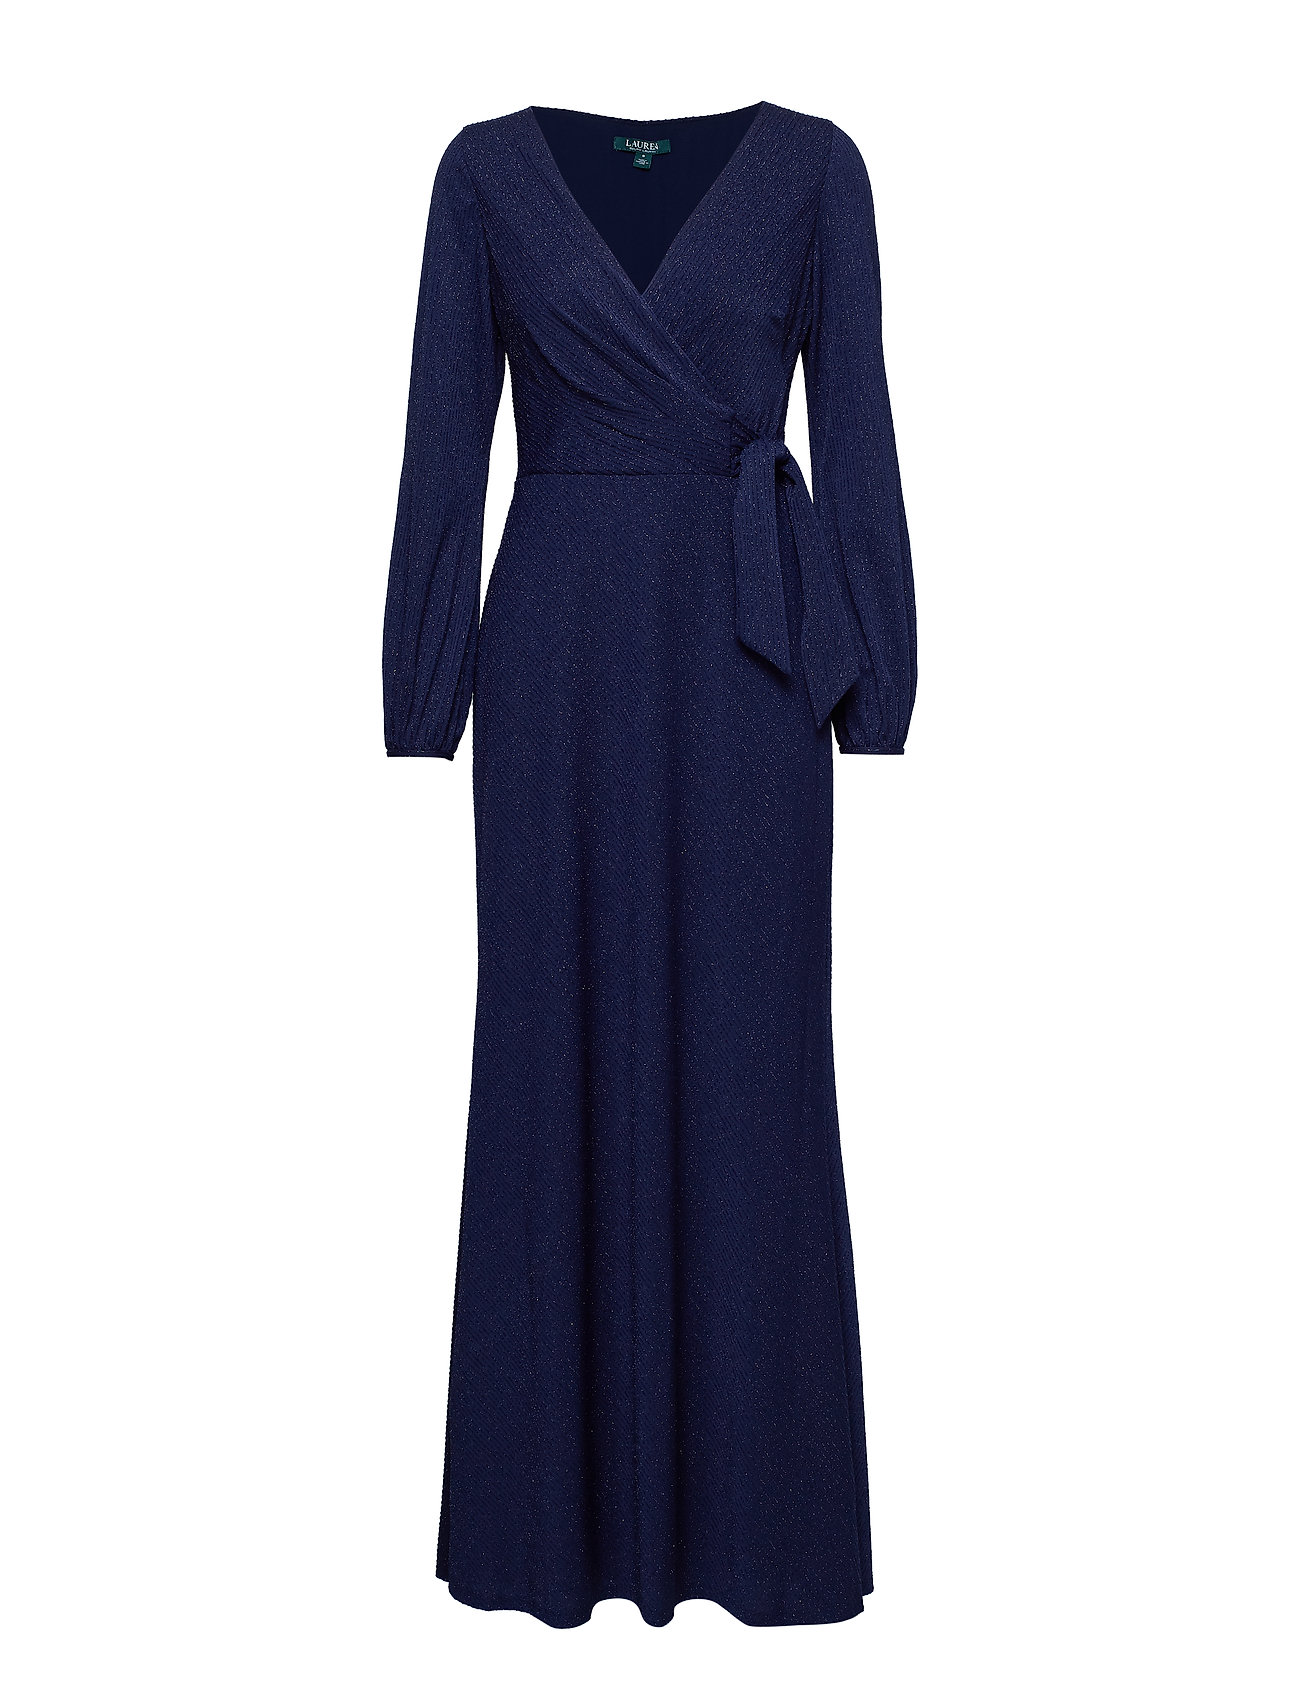 3c3697c0eb Rebekah-long Sleeve-evening Dress (Navy Metallic) (£225) - Lauren ...